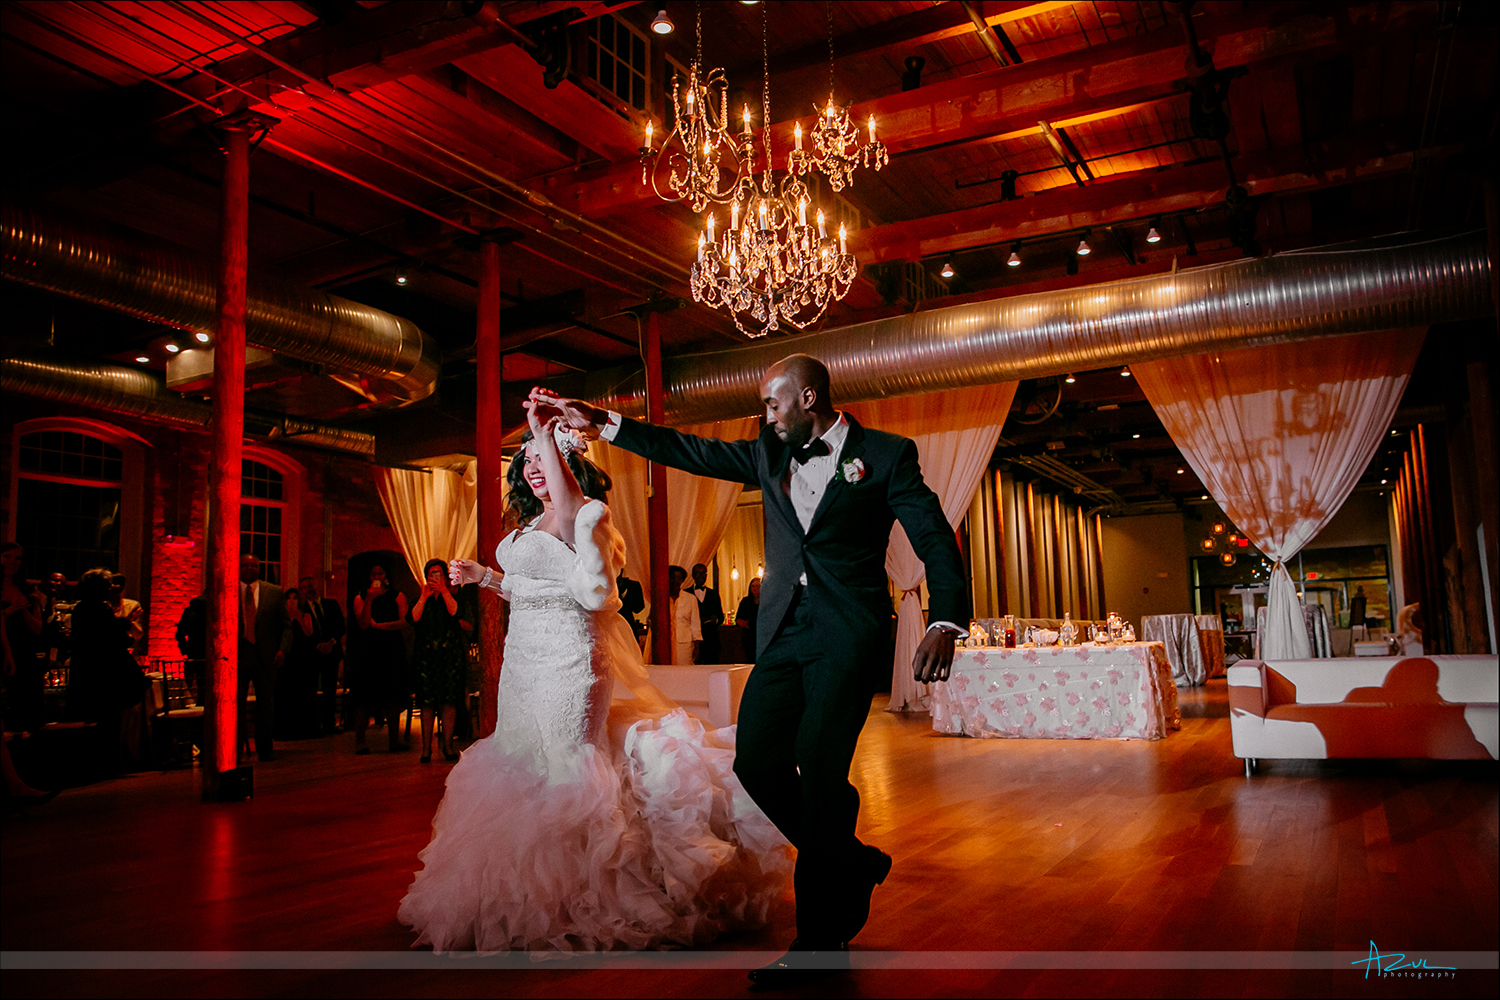 Wonderful first dance photography shot at The Cotton Room for a wedding recption in Duehm NC